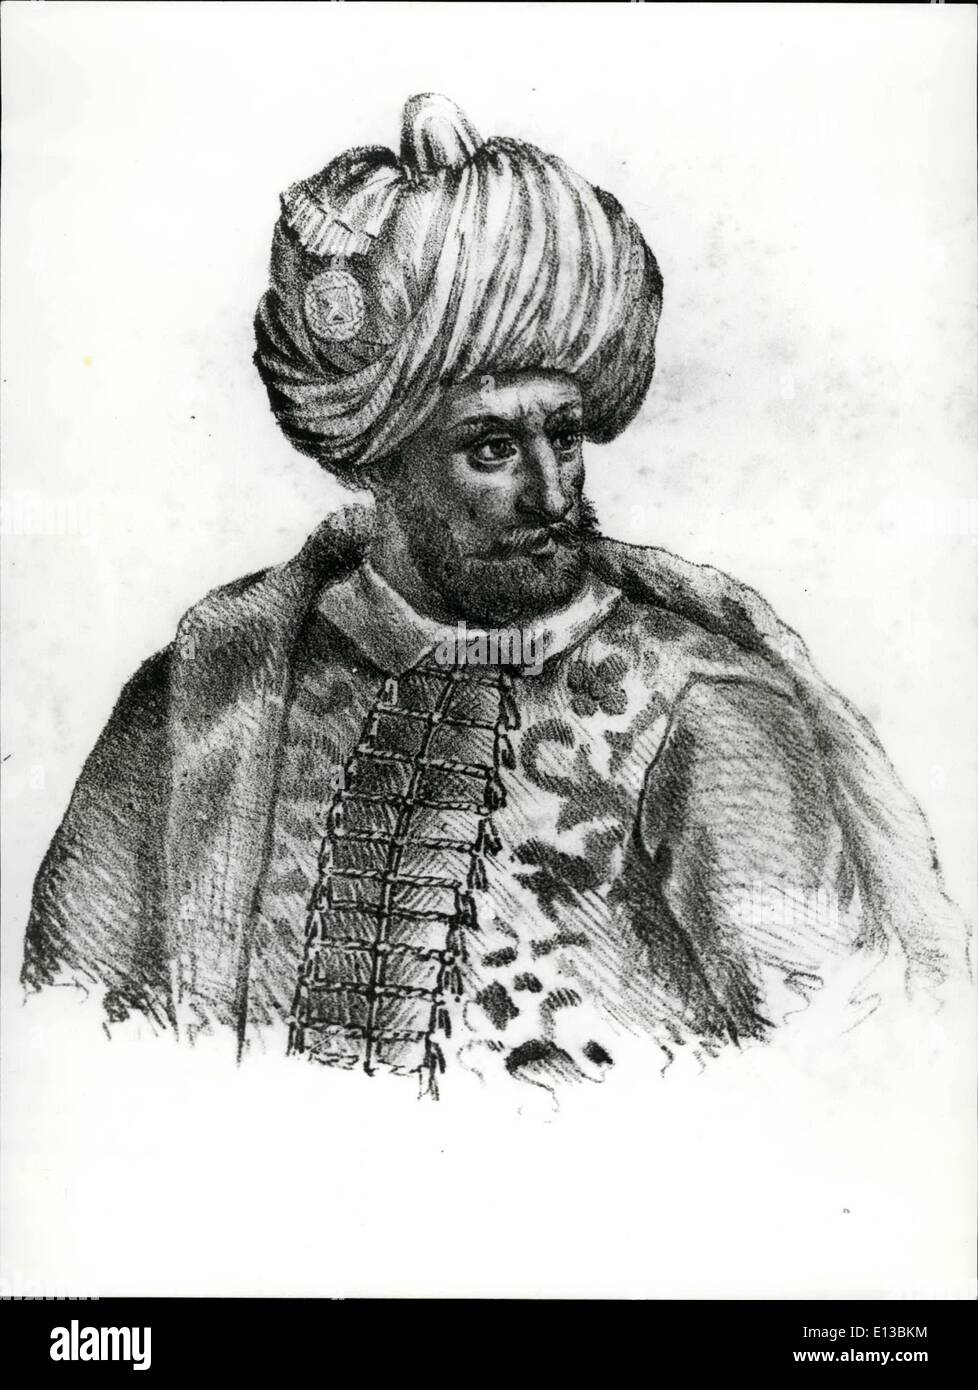 Feb. 29, 2012 - Sephardic jews in Turkey. Black and White Print (B) Sultan Beyazit II: Sultan Beyazit II son of Mehmet II, the Conqueror who at the time of the expulsion of the Jews from Spain in 1492, opened doors of the Ottoman empire to the exiles and gave them haven. The Spanish Jews came mainly to Salonika, Smyna and to Constantinople. - Stock Image